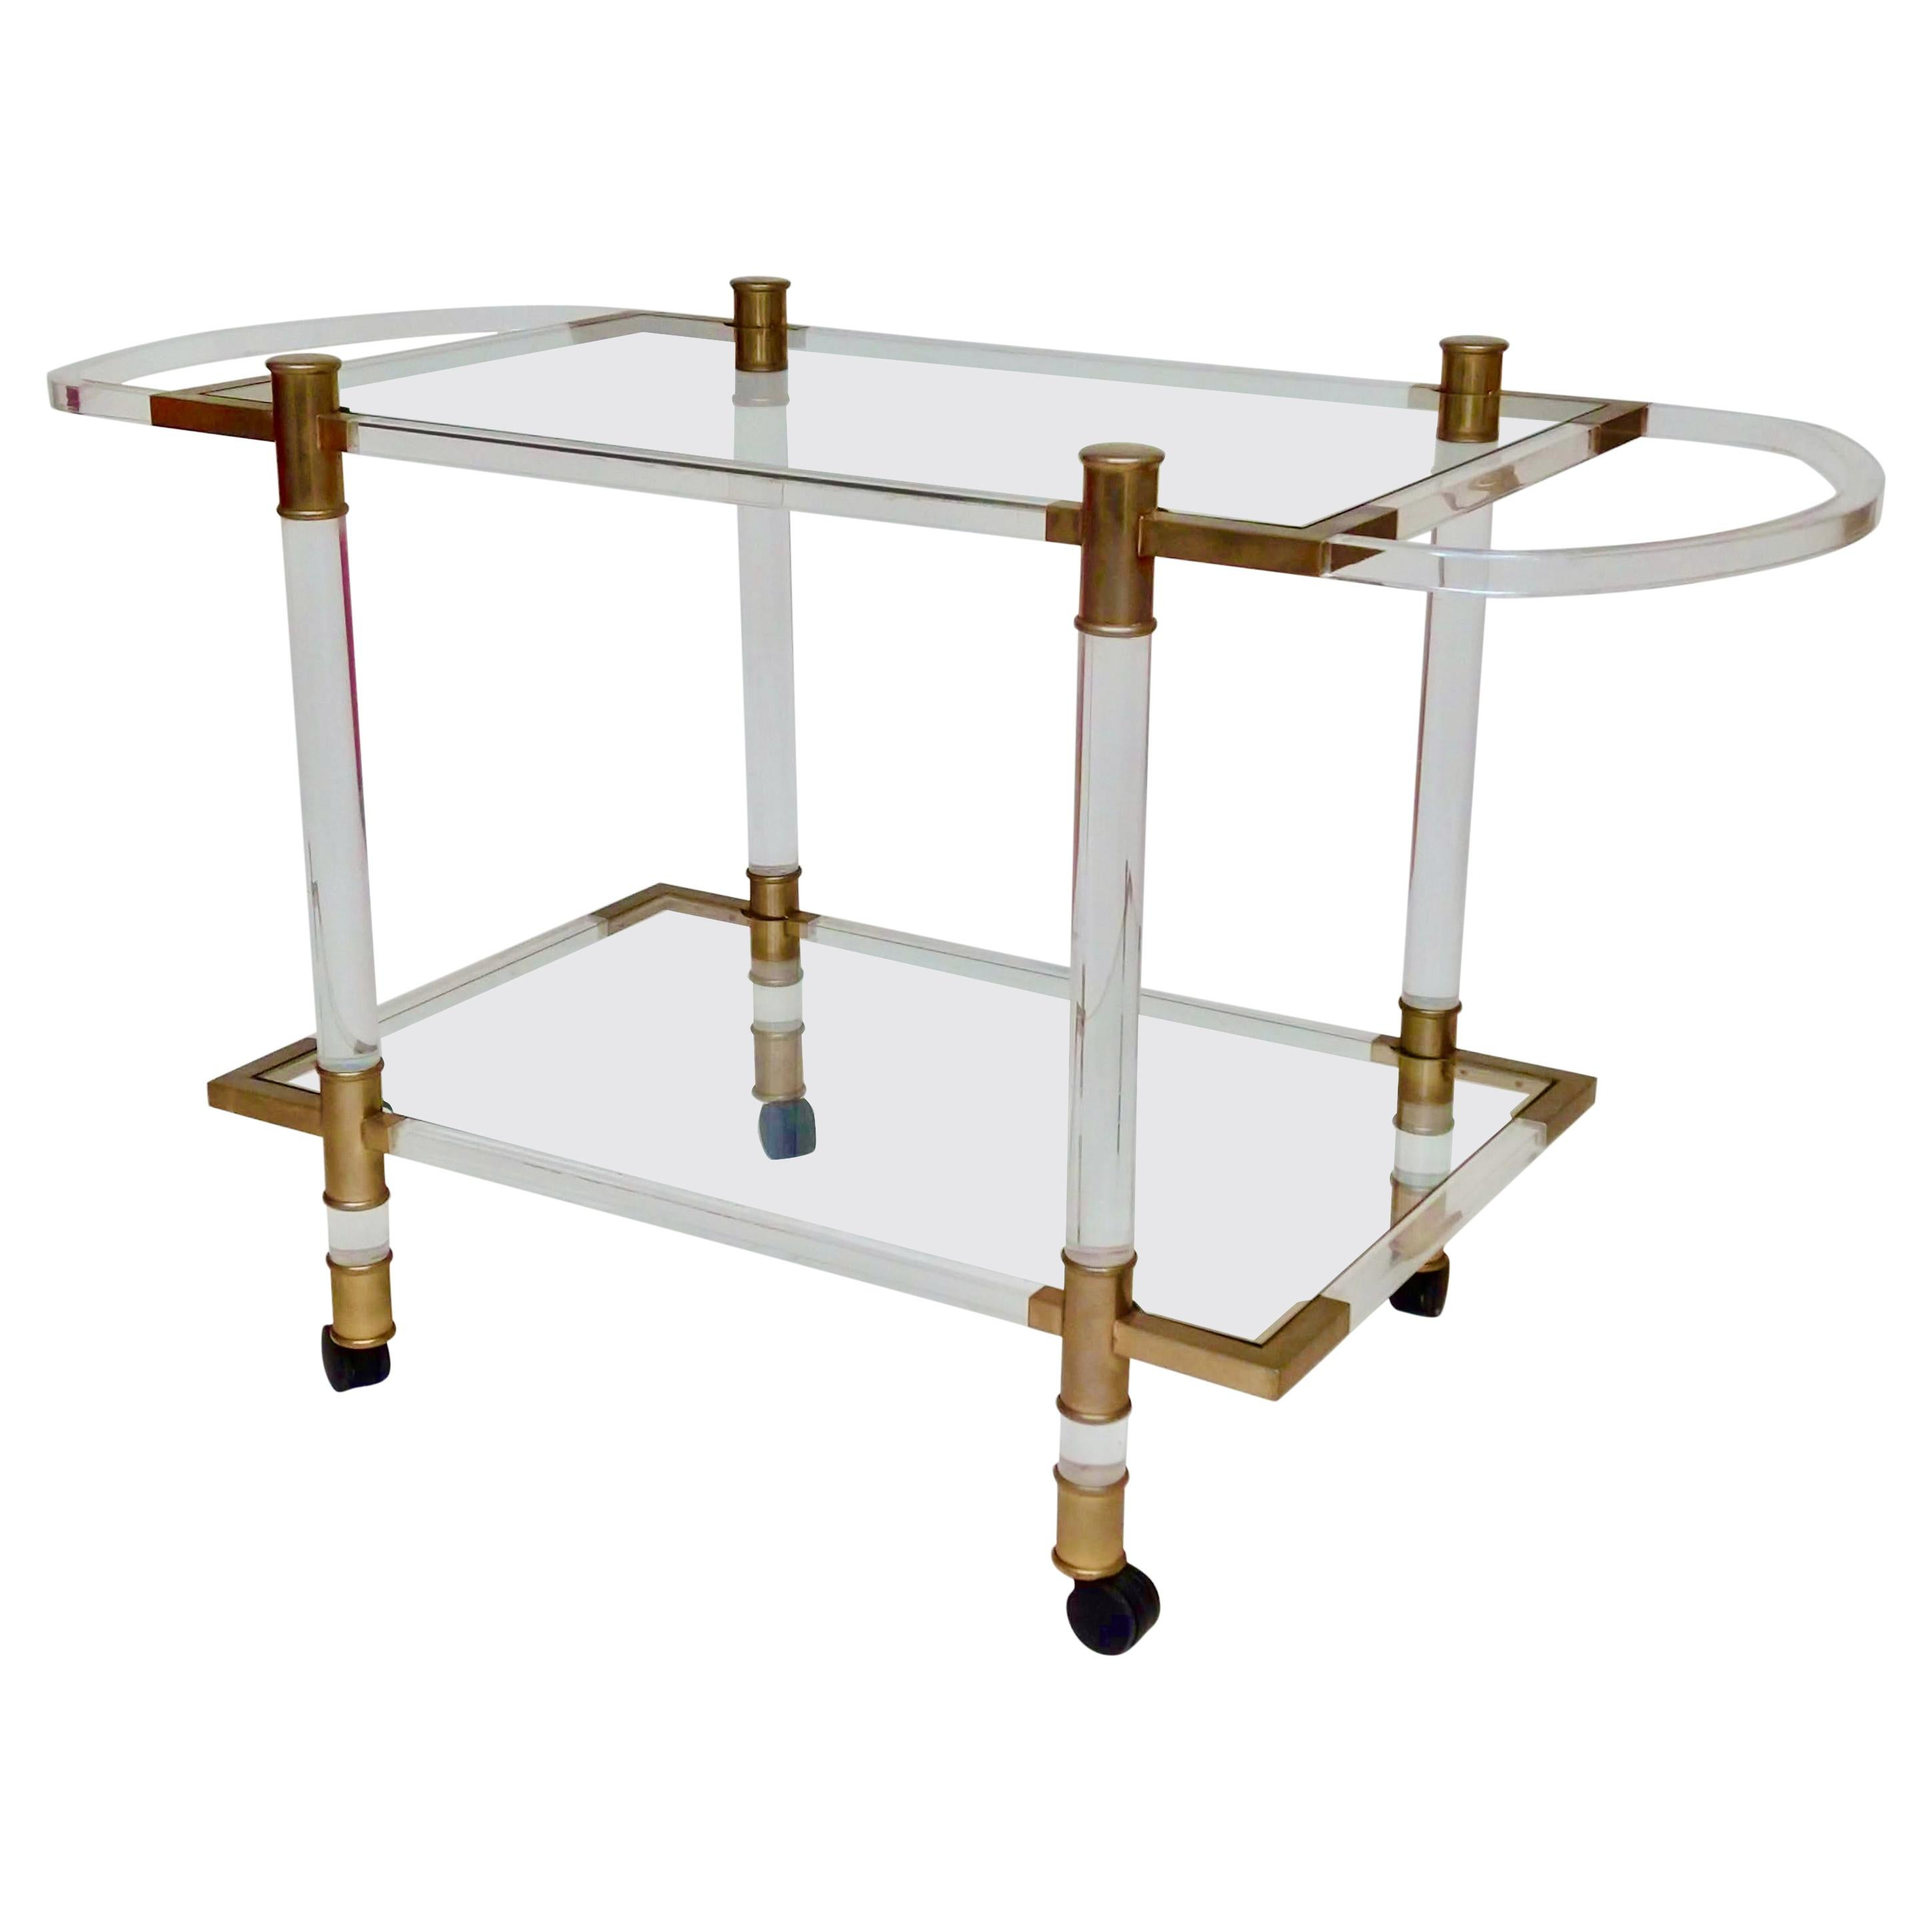 Two-Tier Italian Lucite and Brass-Plated Drinks Trolley / Bar Trolley, c.1970